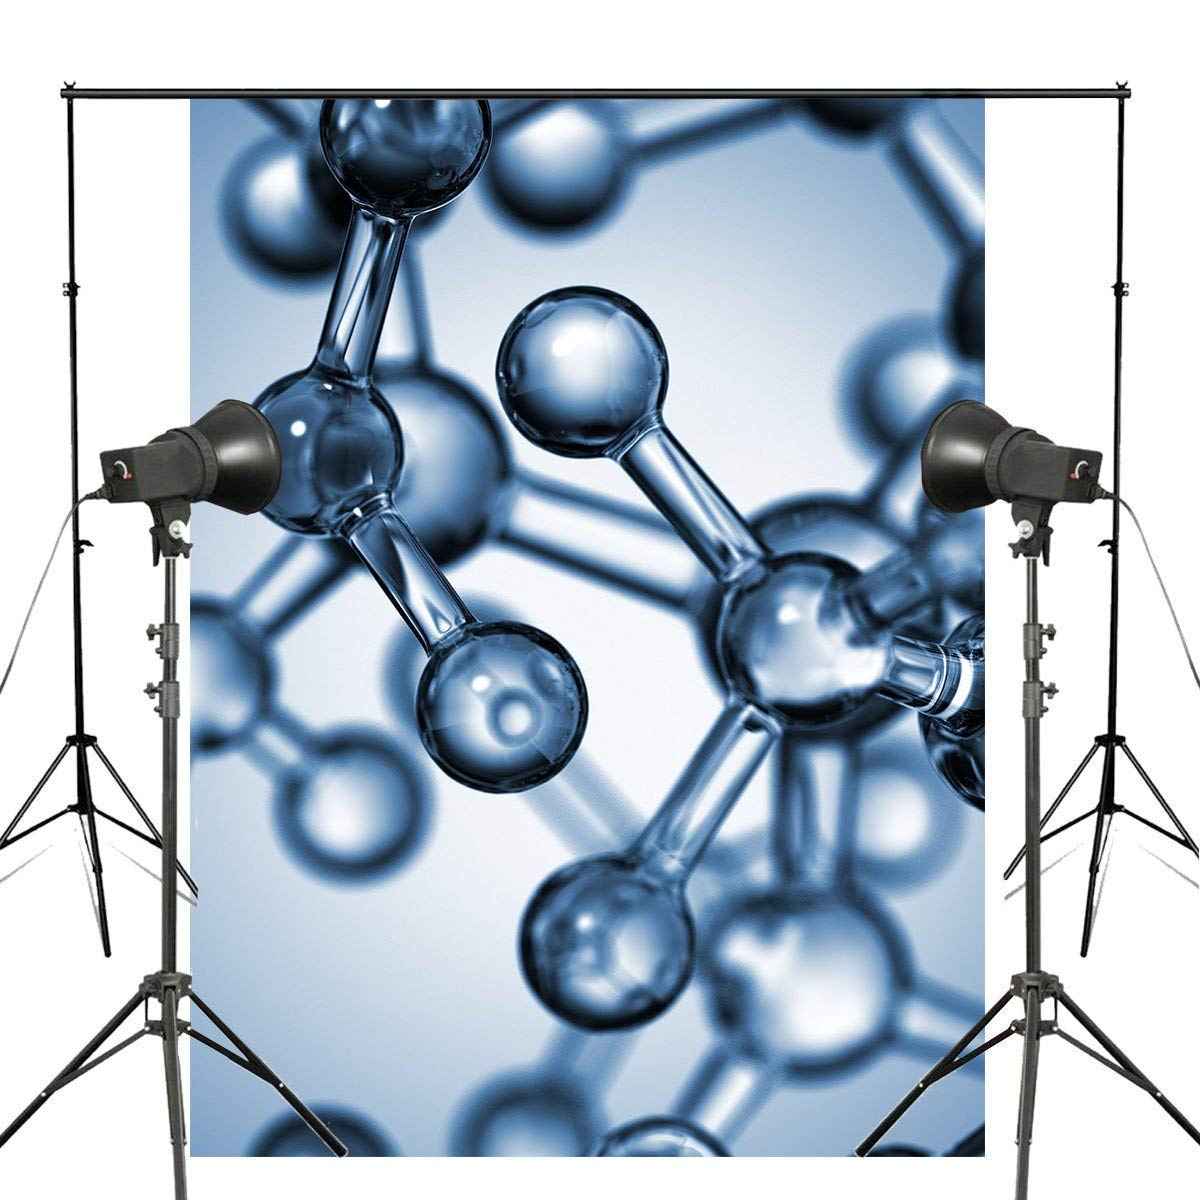 ERTIANANG Molecule Medical Biology Photography Background Medicine Psychedelic Science Backdrop Studio Props Wall 150x220cm